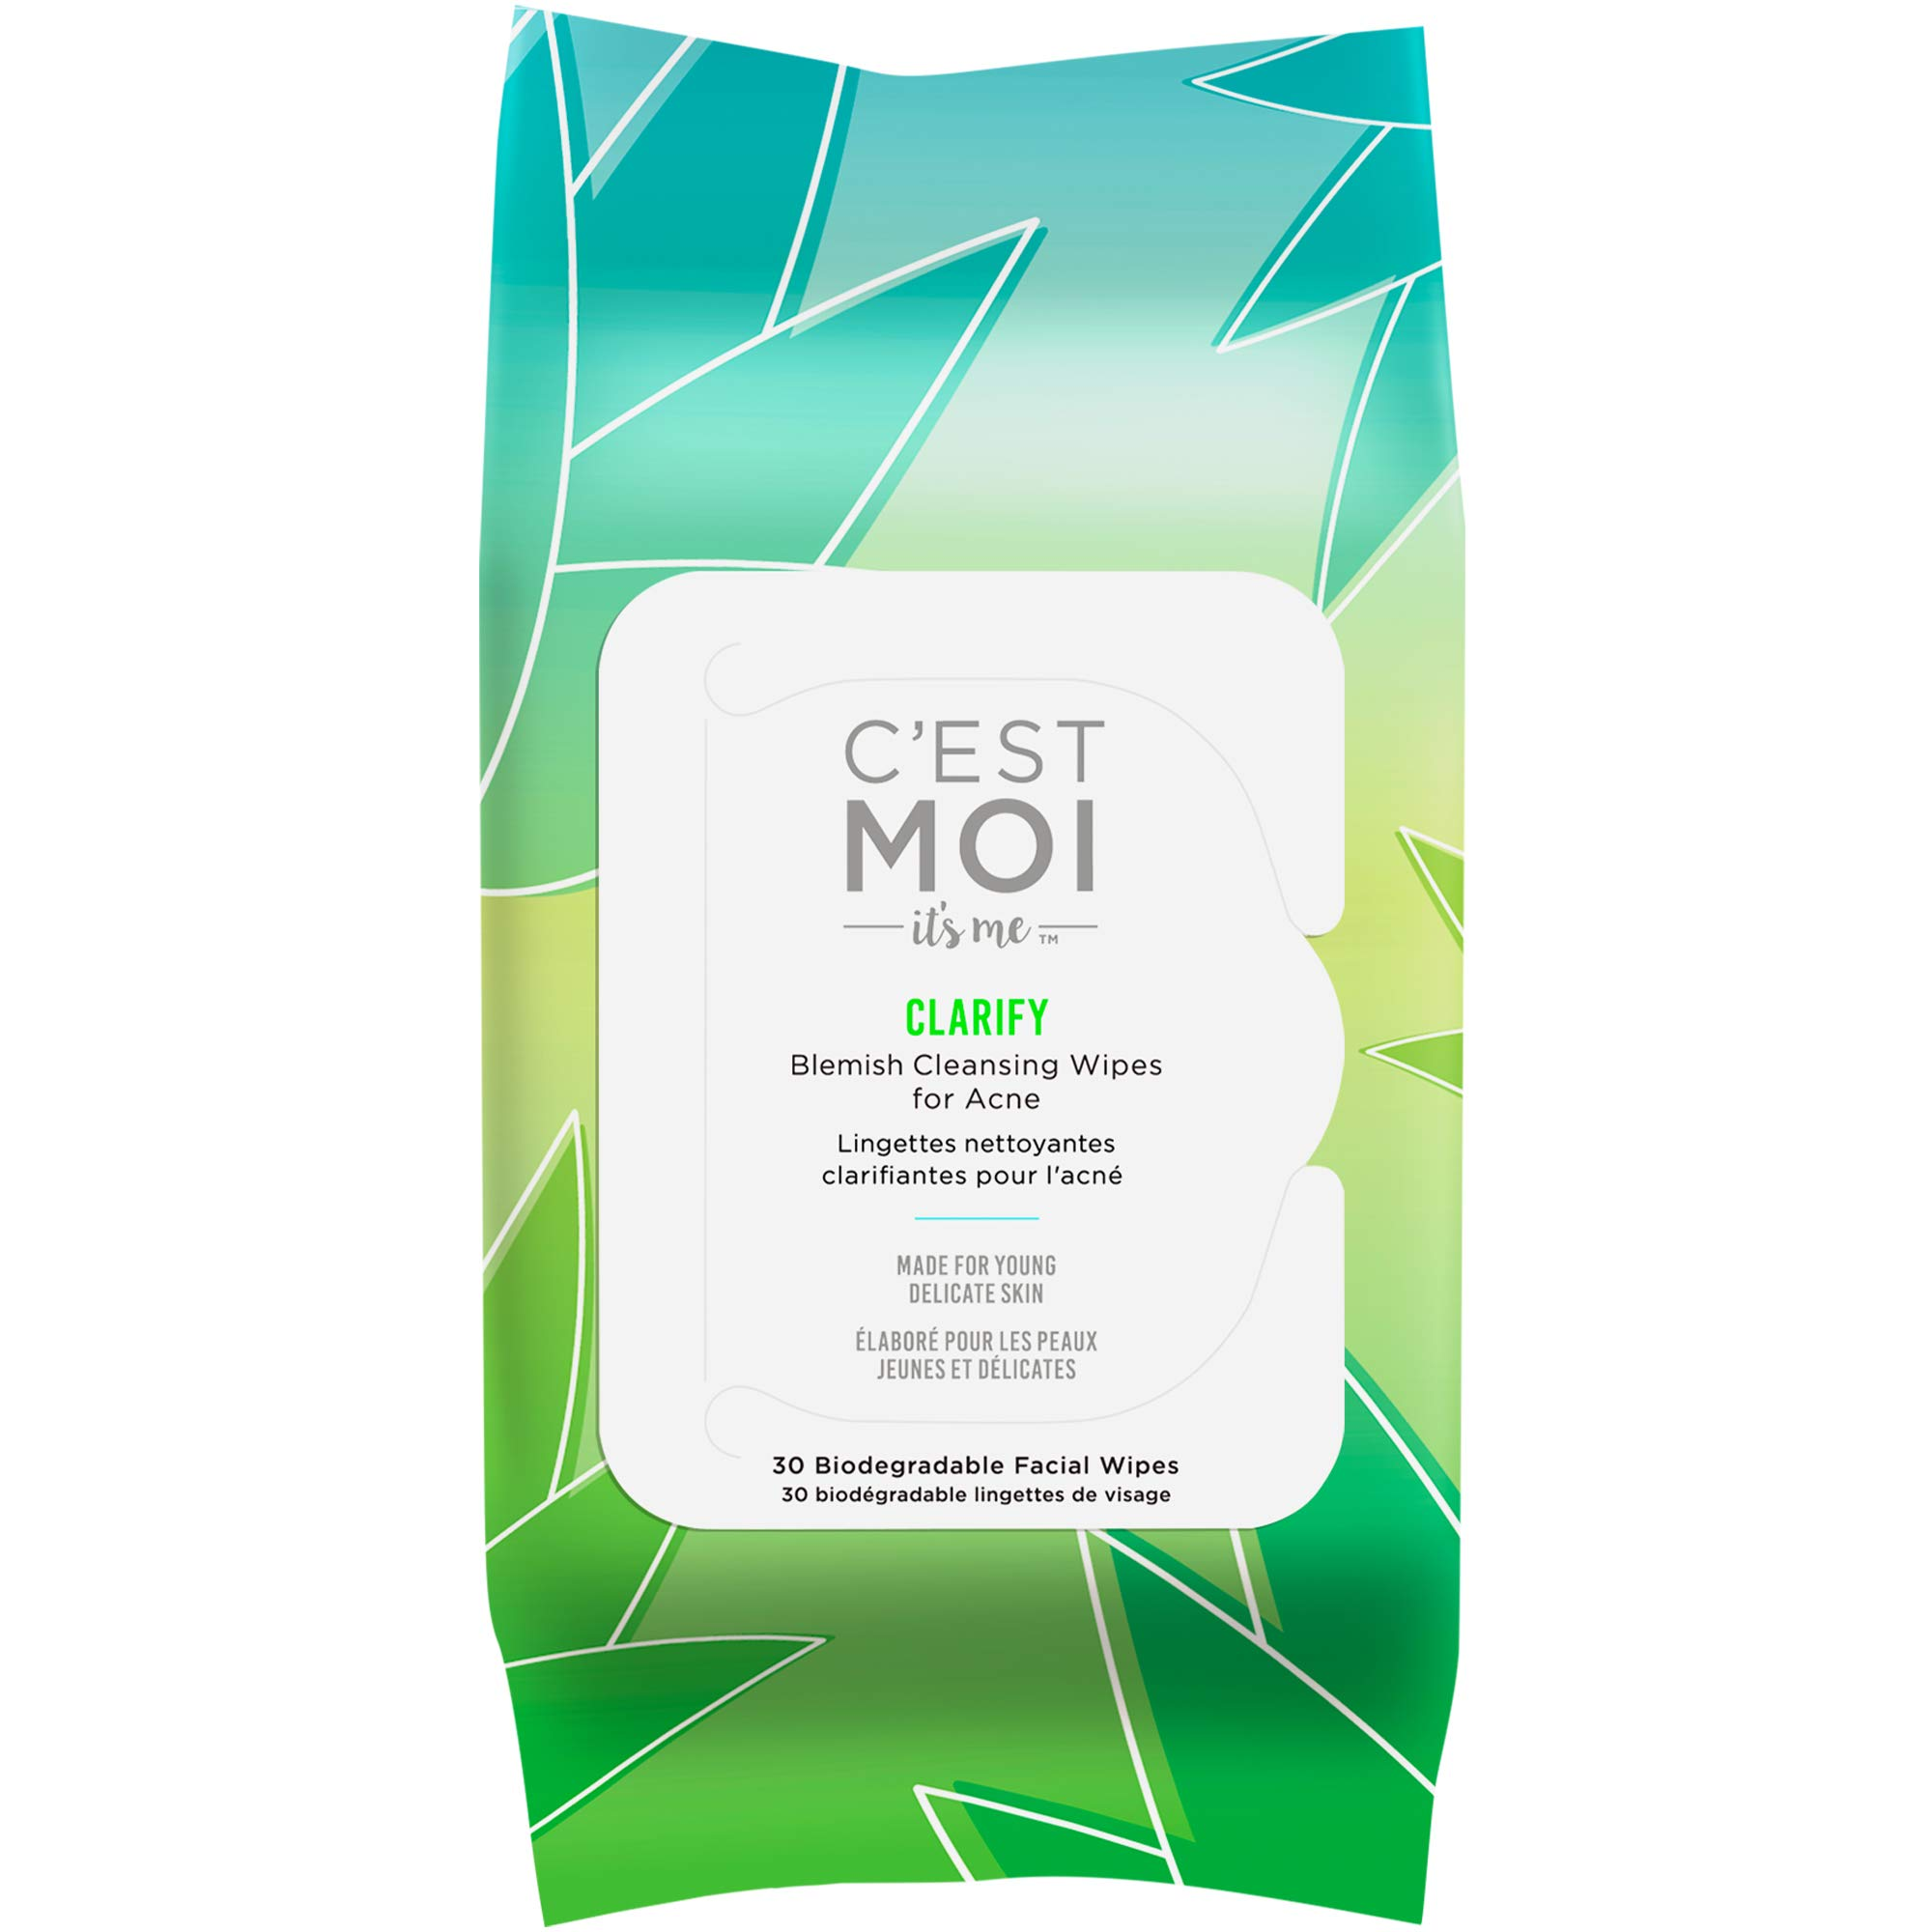 C'est Moi Clarify Facial Wipes | Gentle Face Cleansing Wipes, Controls Breakouts, Clinically Tested Natural & Organic Non-Toxic Ingredients Including 1% Salicylic Acid for Acne, 30 Biodegradable Wipes